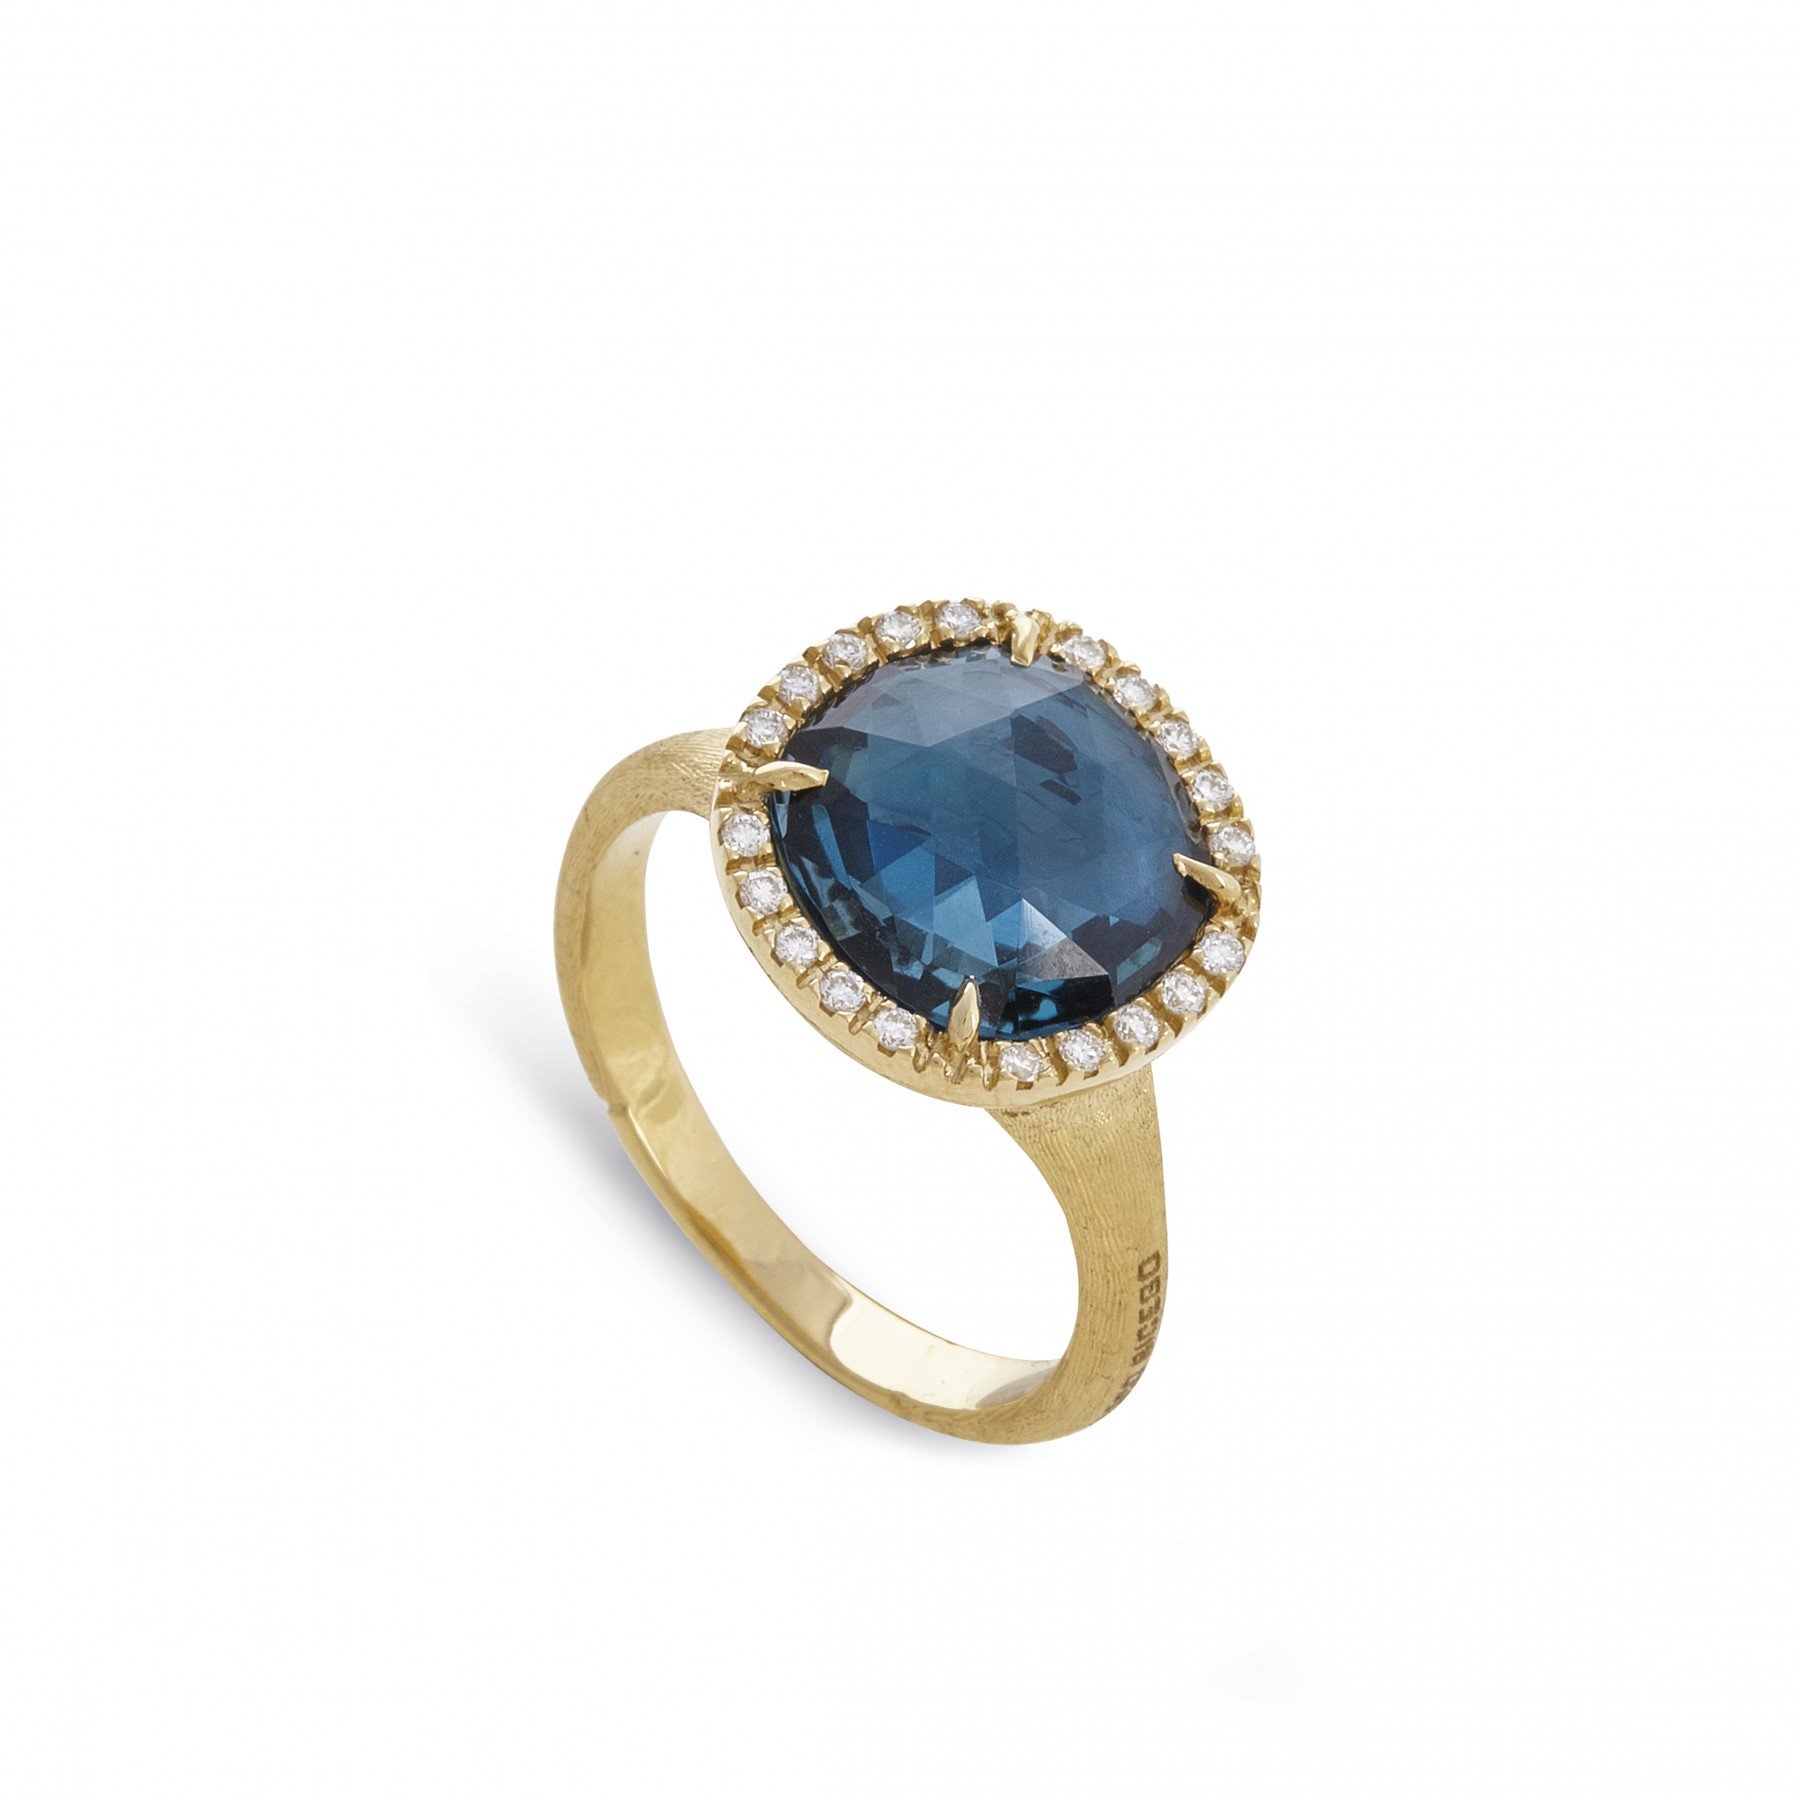 Marco Bicego Yellow Gold Jaipur London Blue Topaz & Diamond Ring